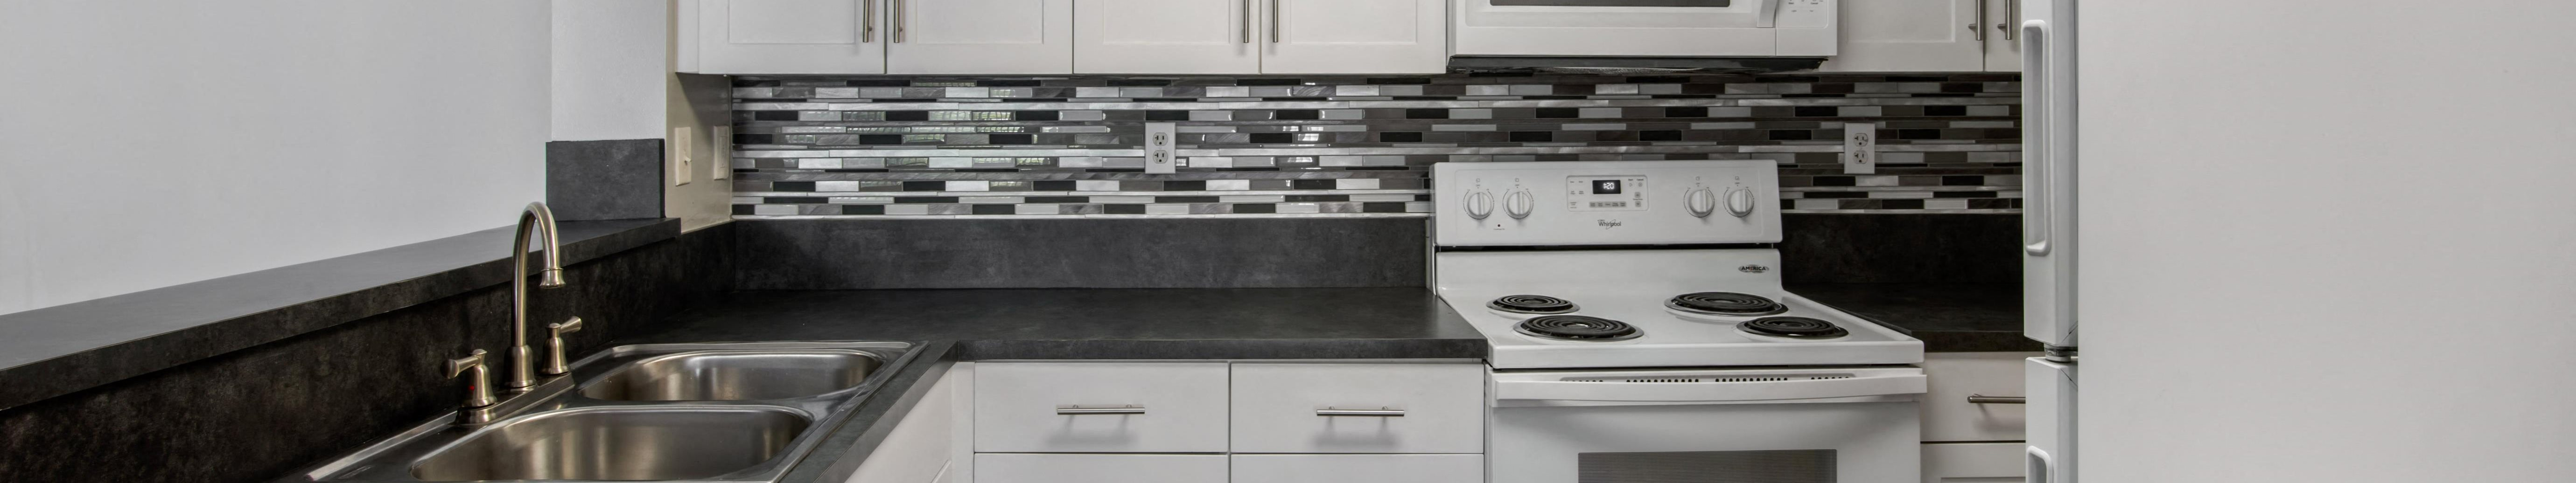 Model Kitchen with White Appliances,  White Cabinets, Black Counters and Glass Backsplash